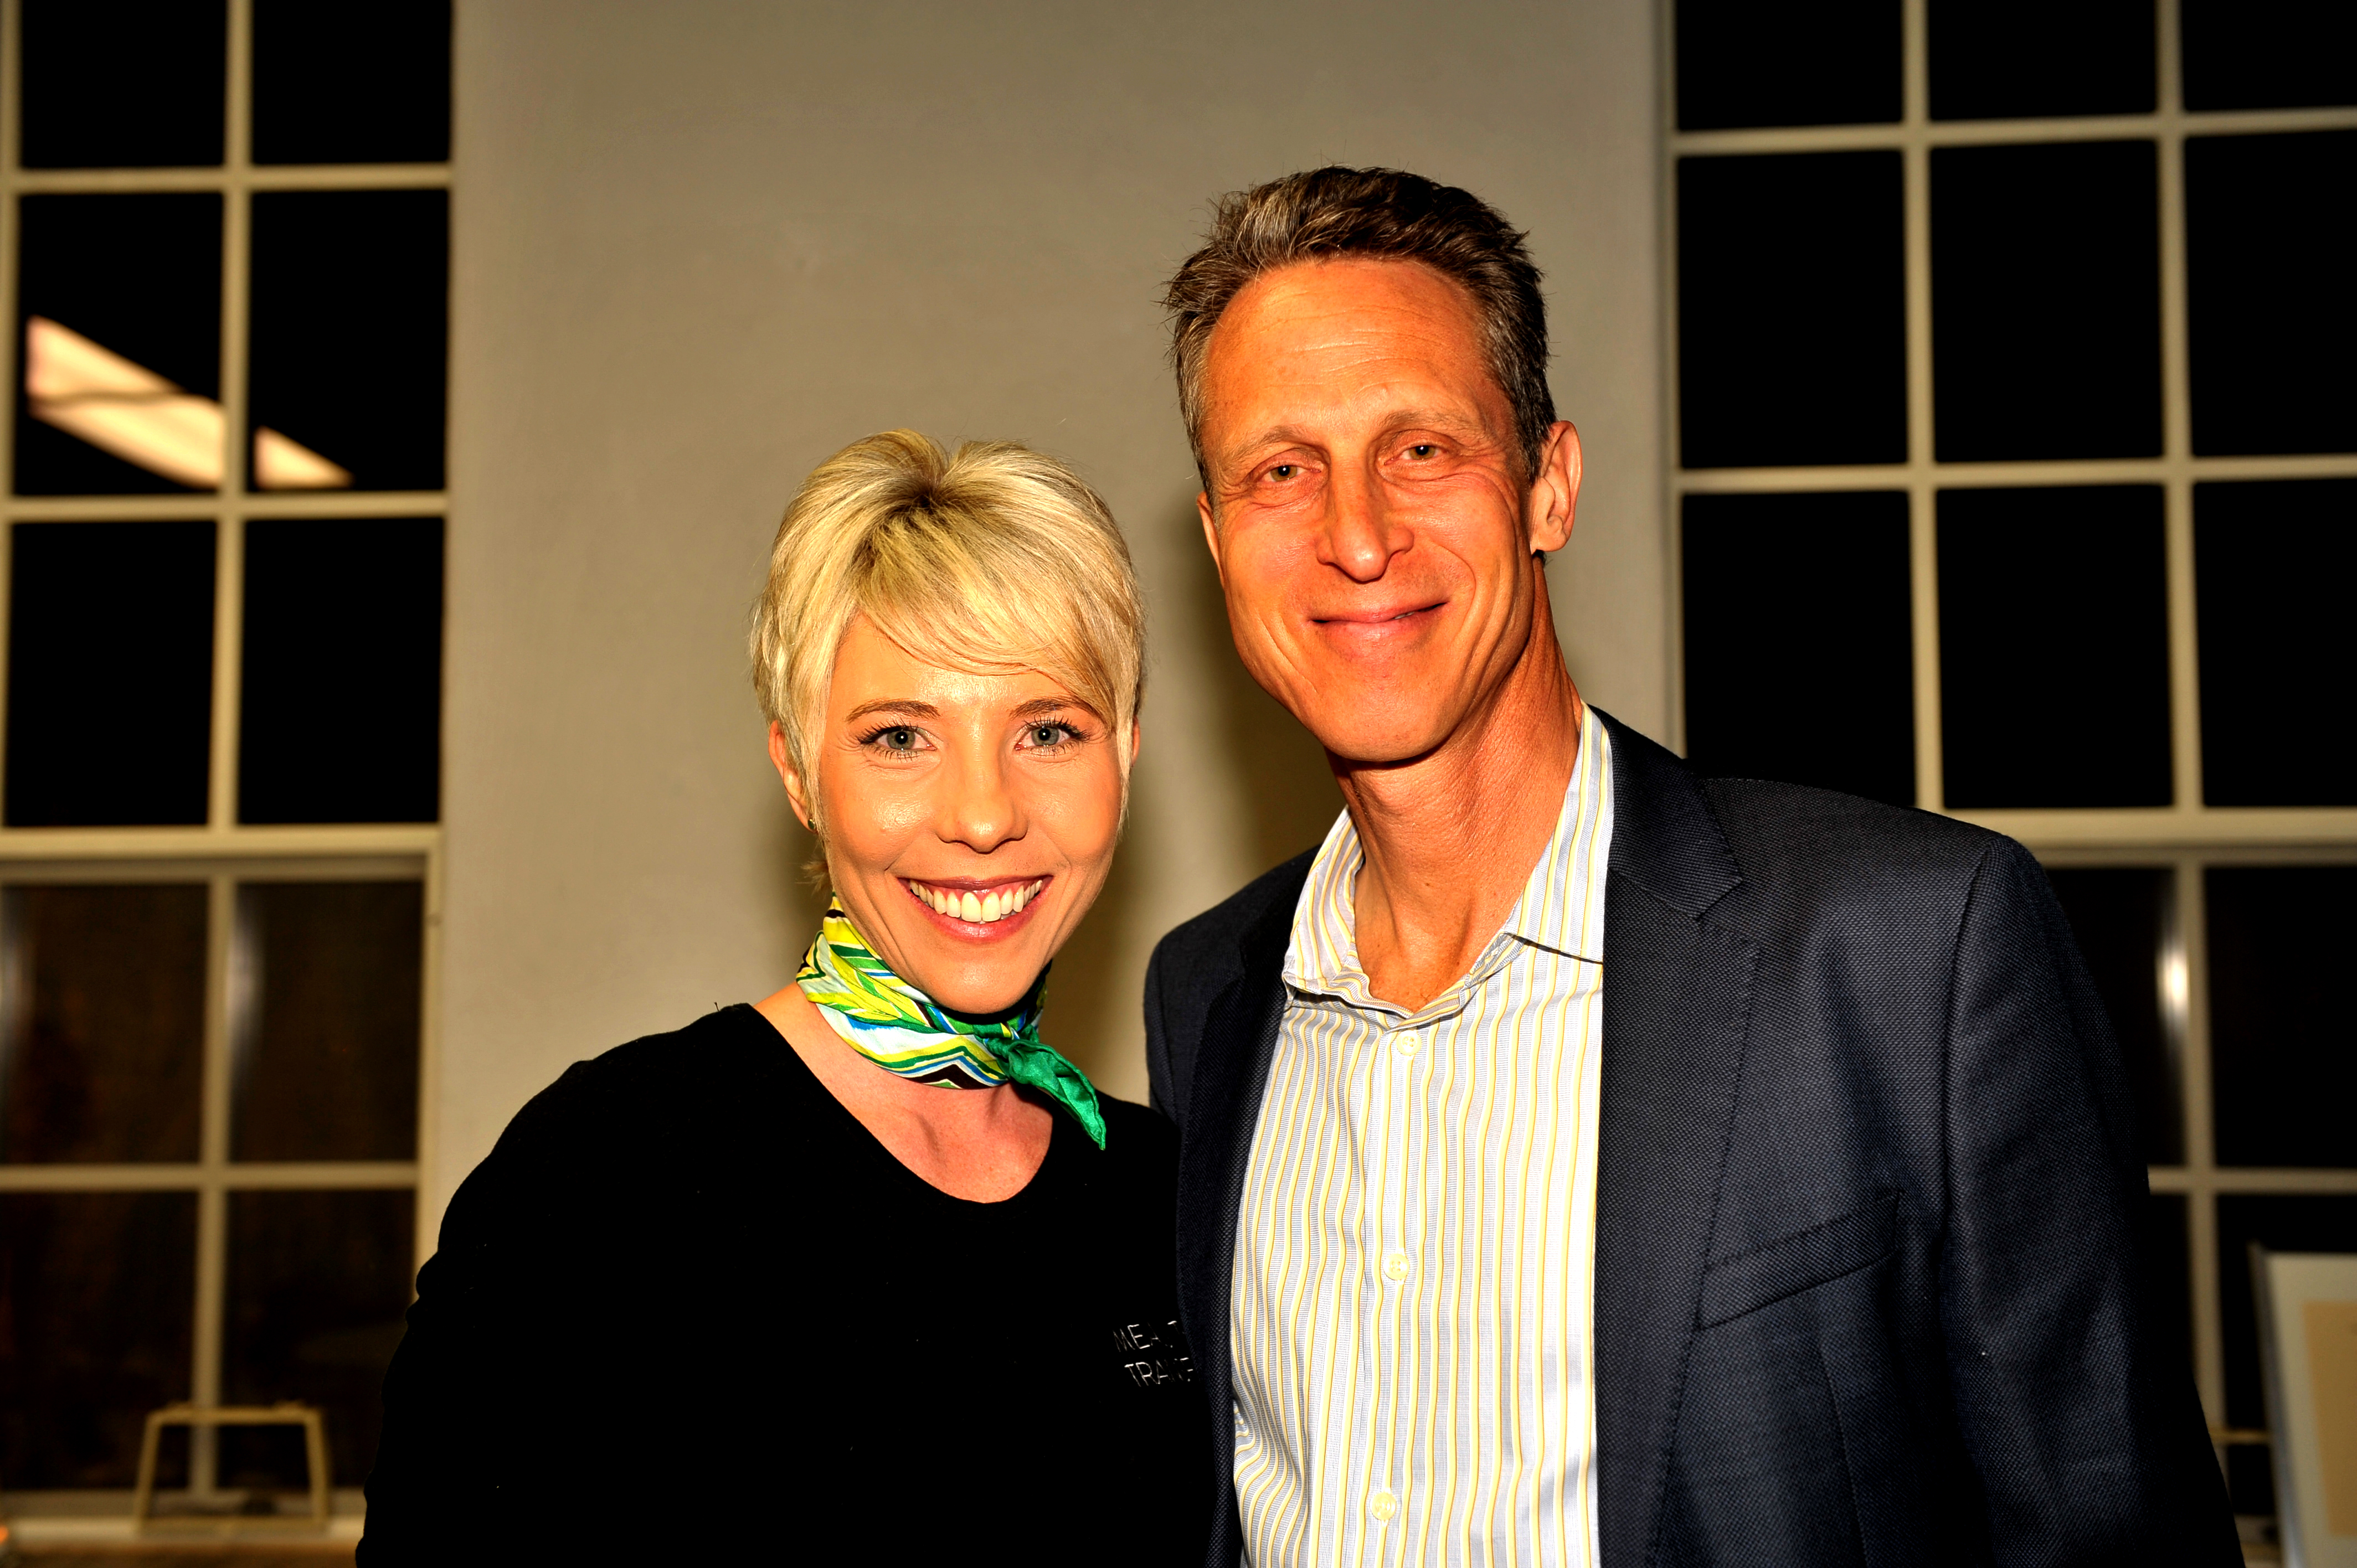 Meals that Transform, Angela and Dr. Hyman